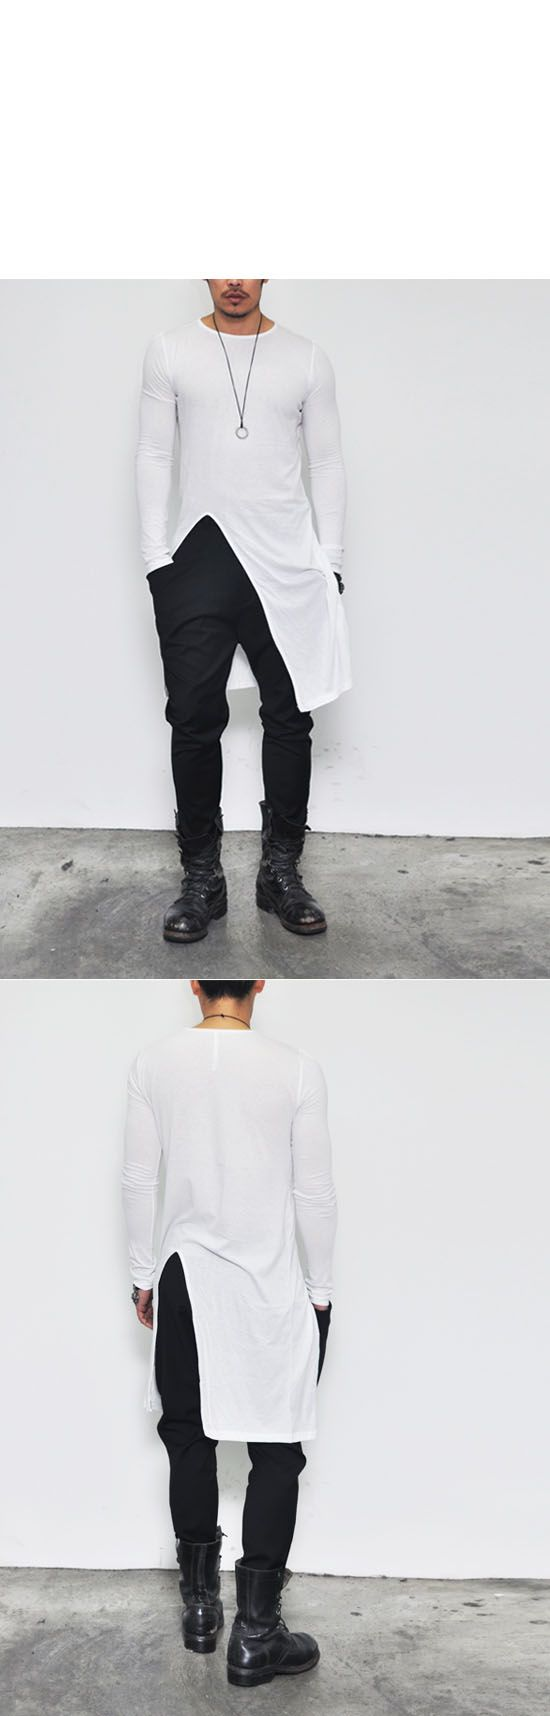 Tops :: Tees :: Avant-garde Edge Unbalance Long-Tee 138 - Mens Fashion Clothing For An Attractive Guy Look